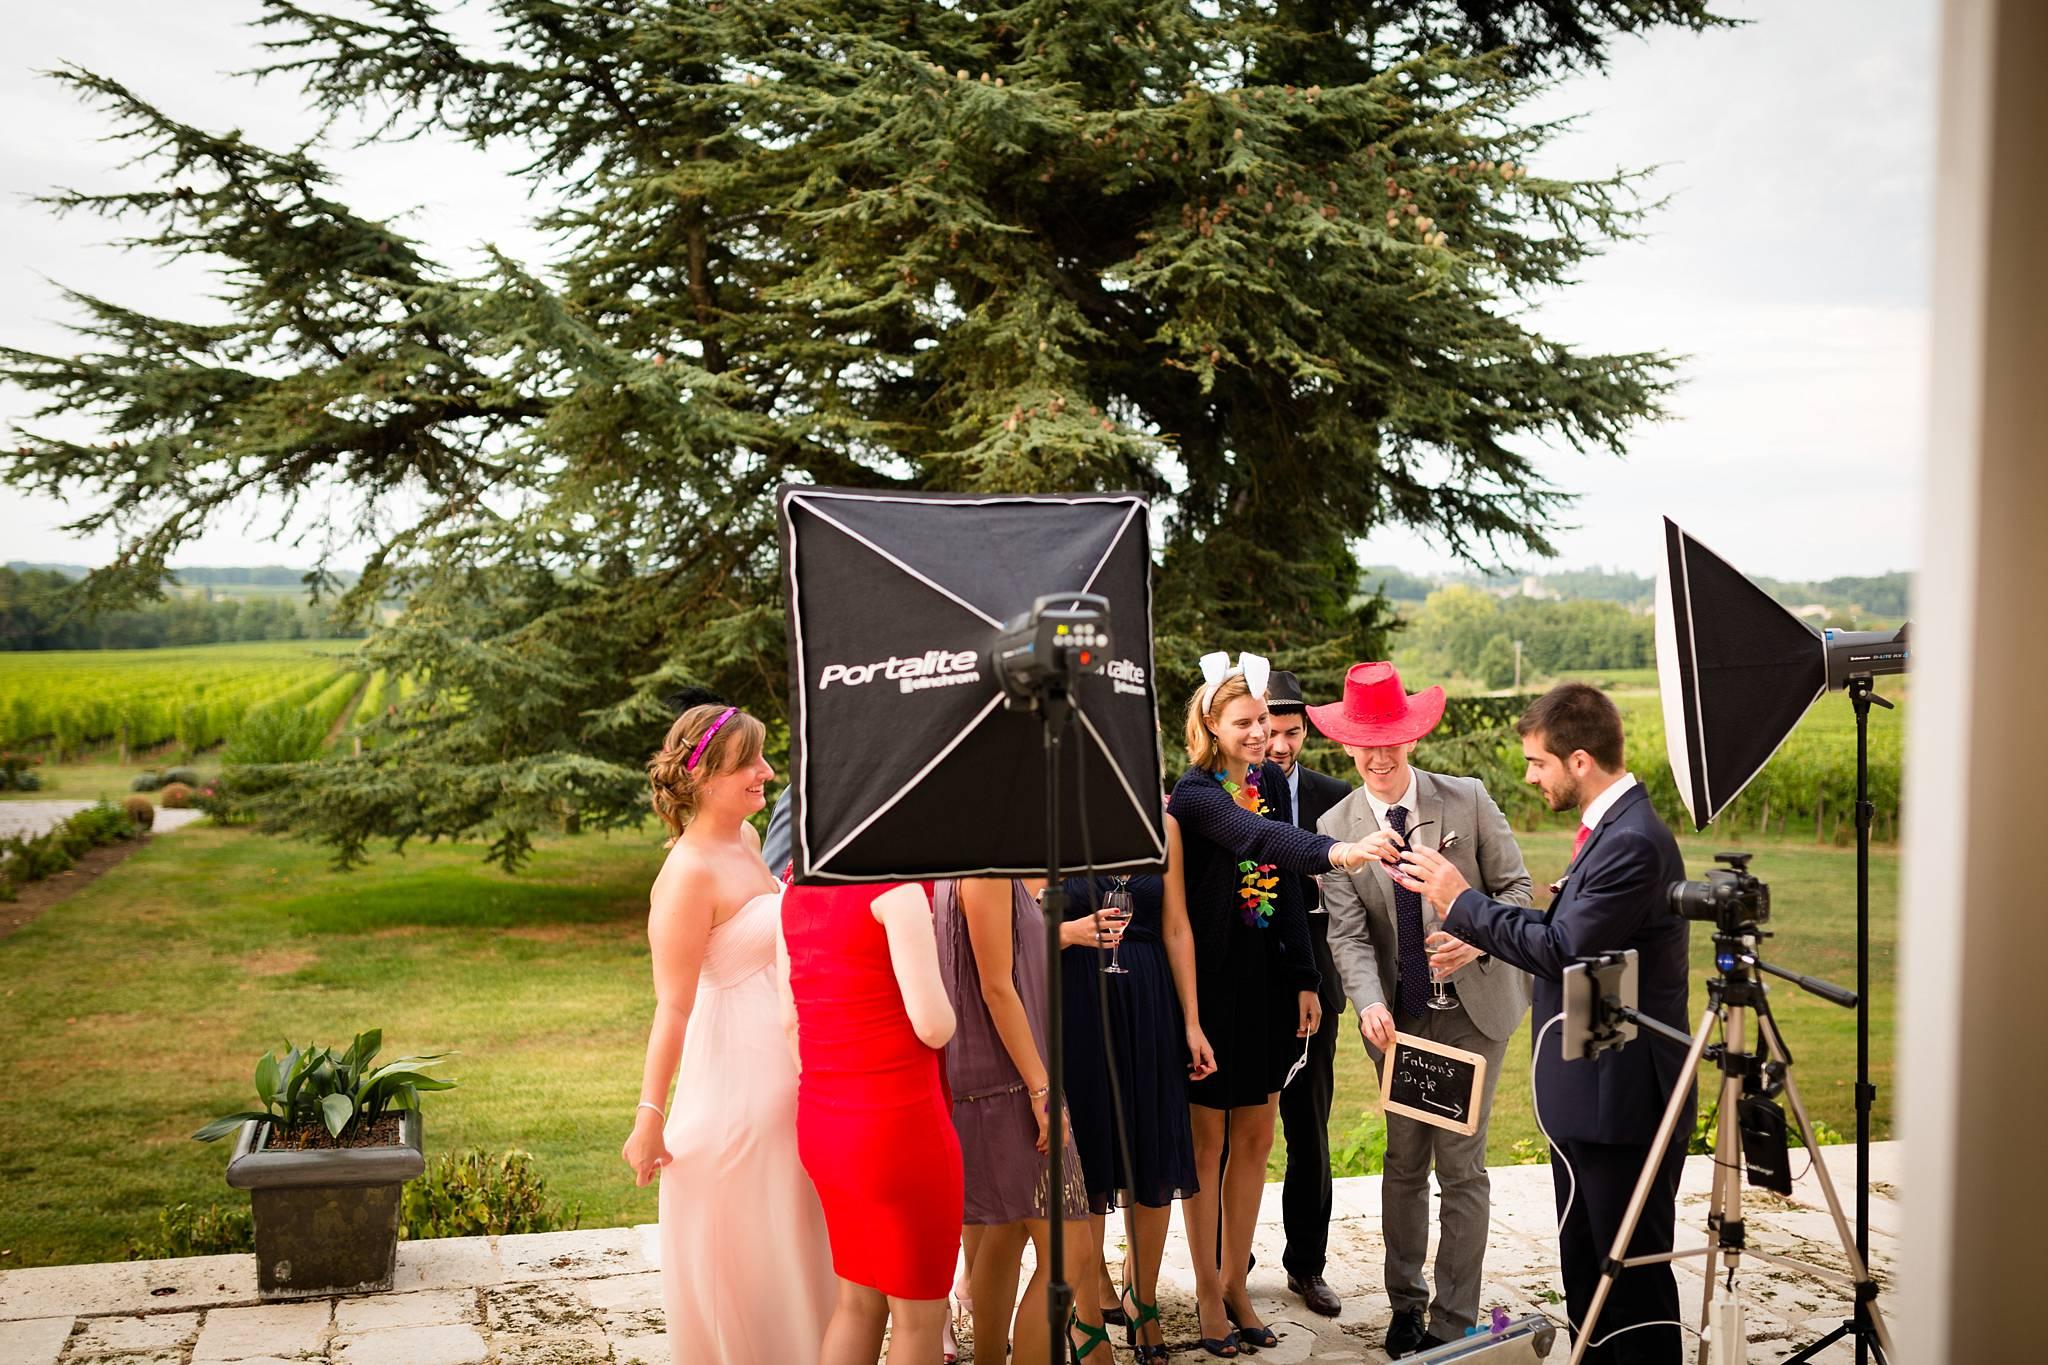 01_photobooth-mariage-backstage-bordeaux-gironde-dordogne-charentes-alexandre-roschewitz-photographies_2048px